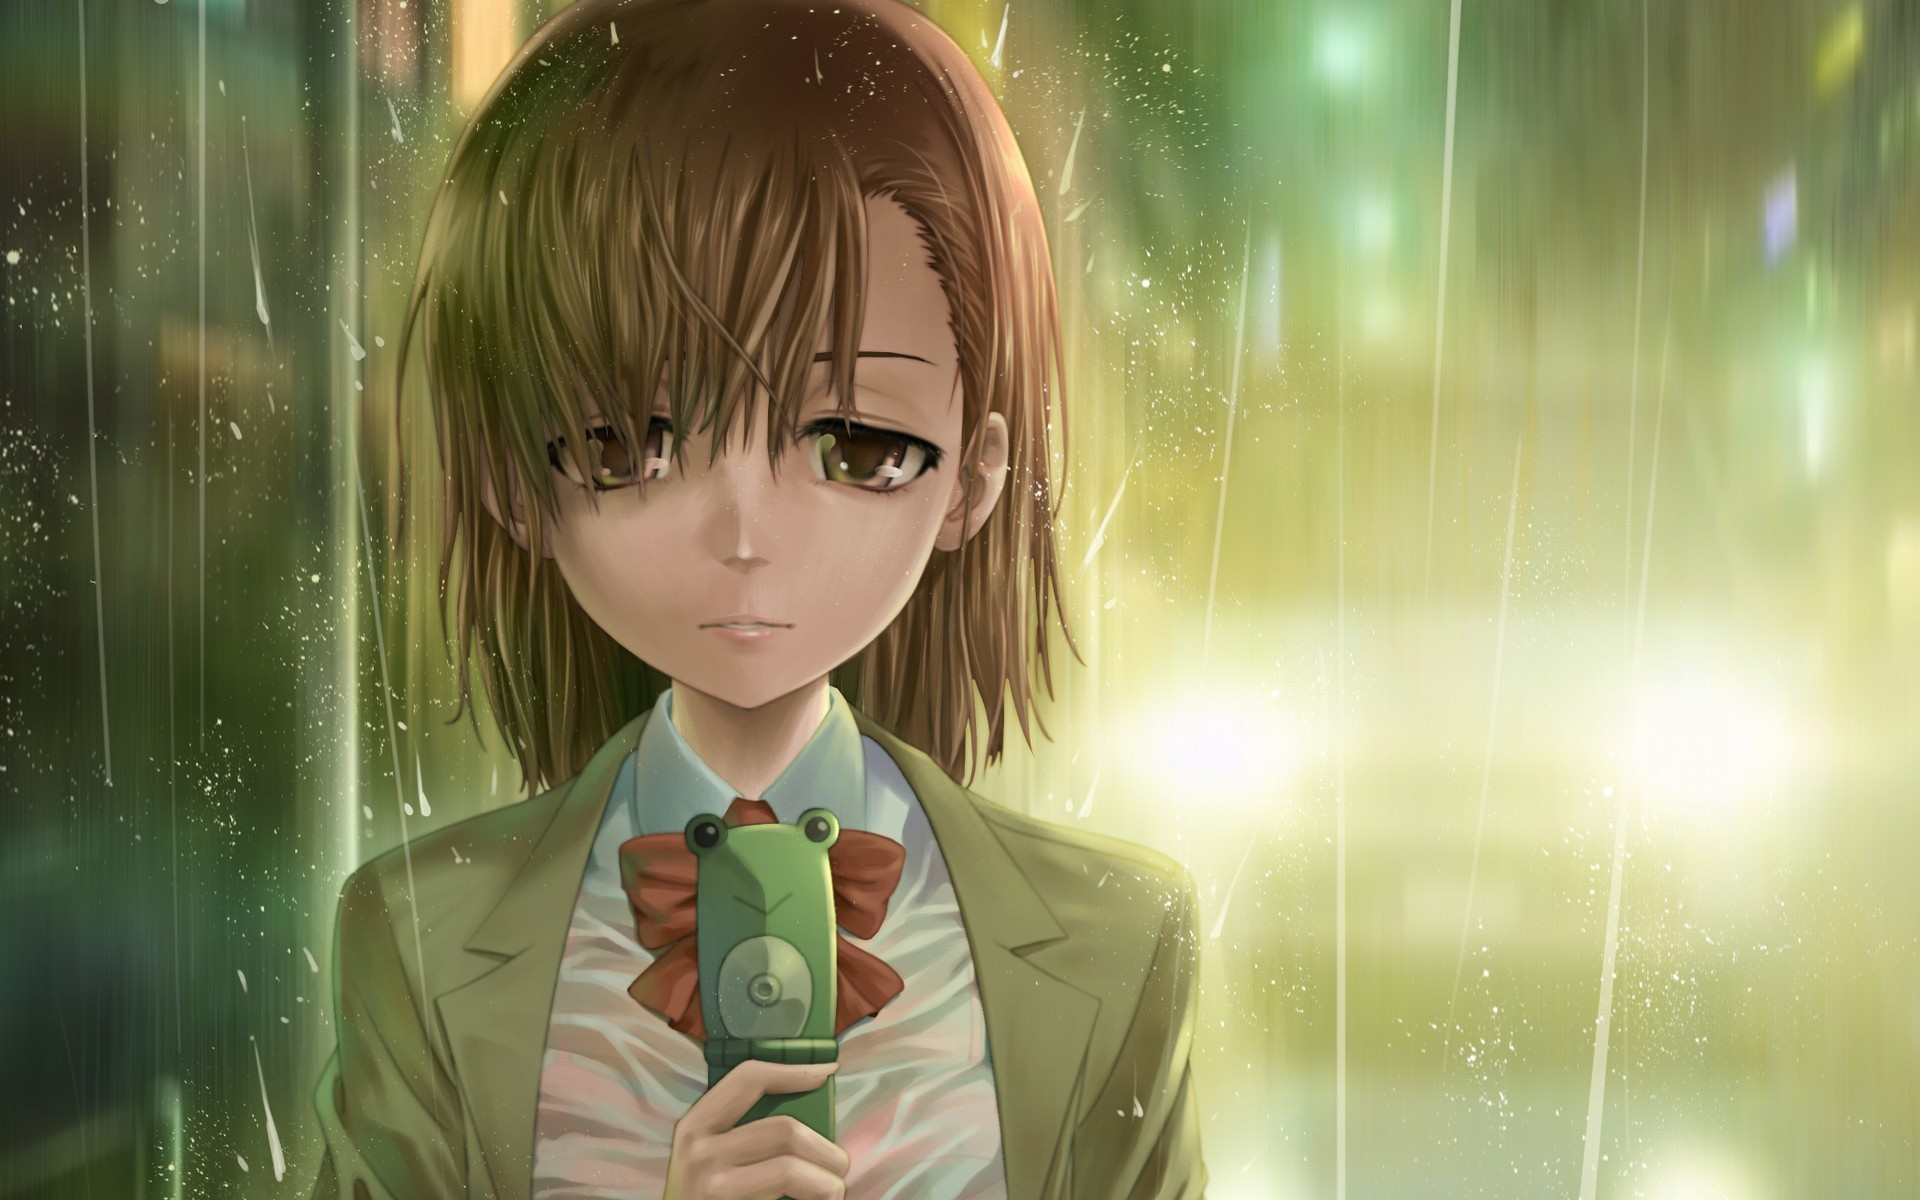 rain misaka mikoto toaru HD Wallpaper